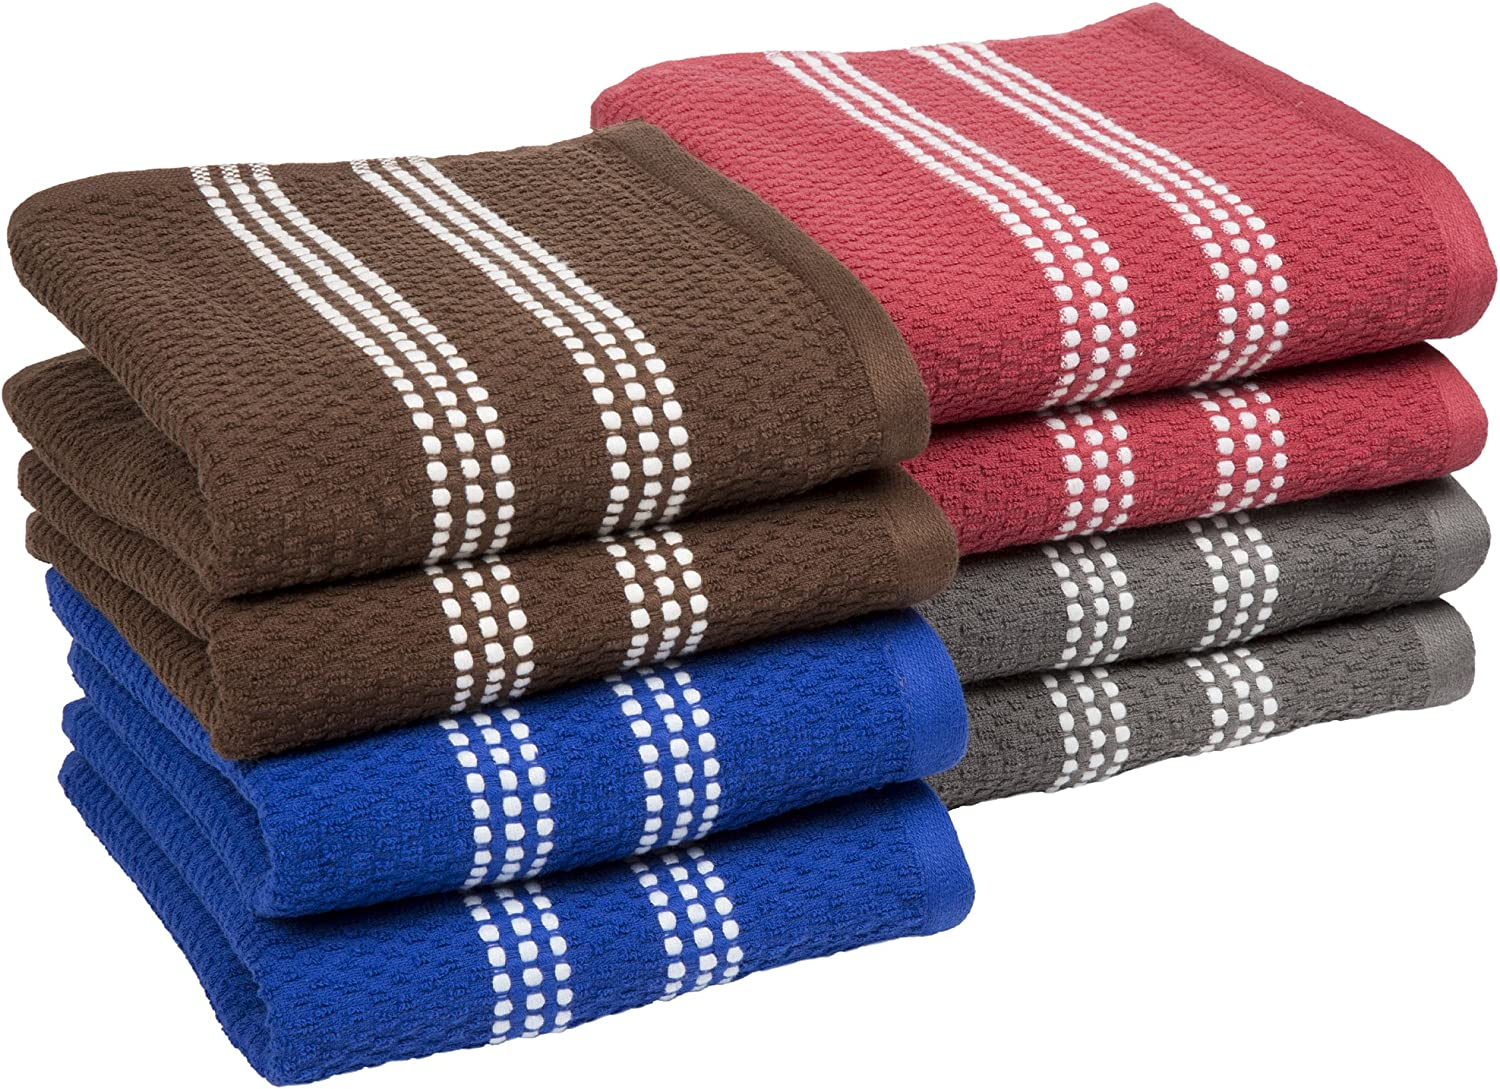 Lavish Home 100% Combed Cotton Dish Cloths Pack-Absorbent Popcorn Terry Weave-Kitchen Dishtowels, Cleaning/Drying (8 Pack-Multiple Colors)